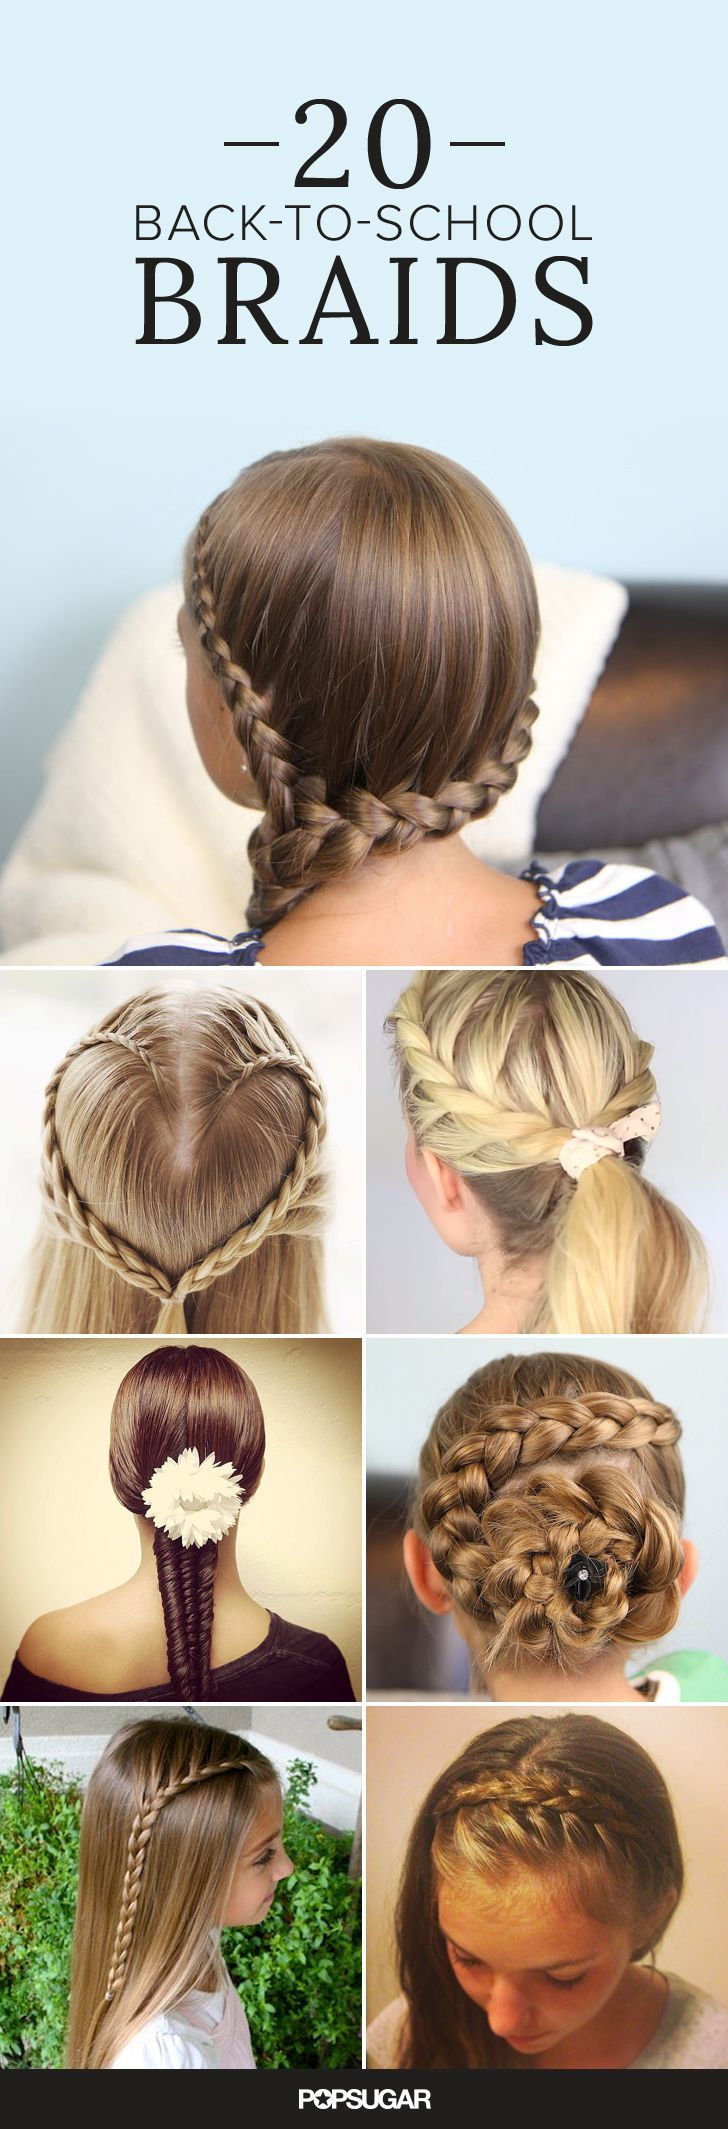 26 Braids To Inspire A School Morning Do With Images Cool